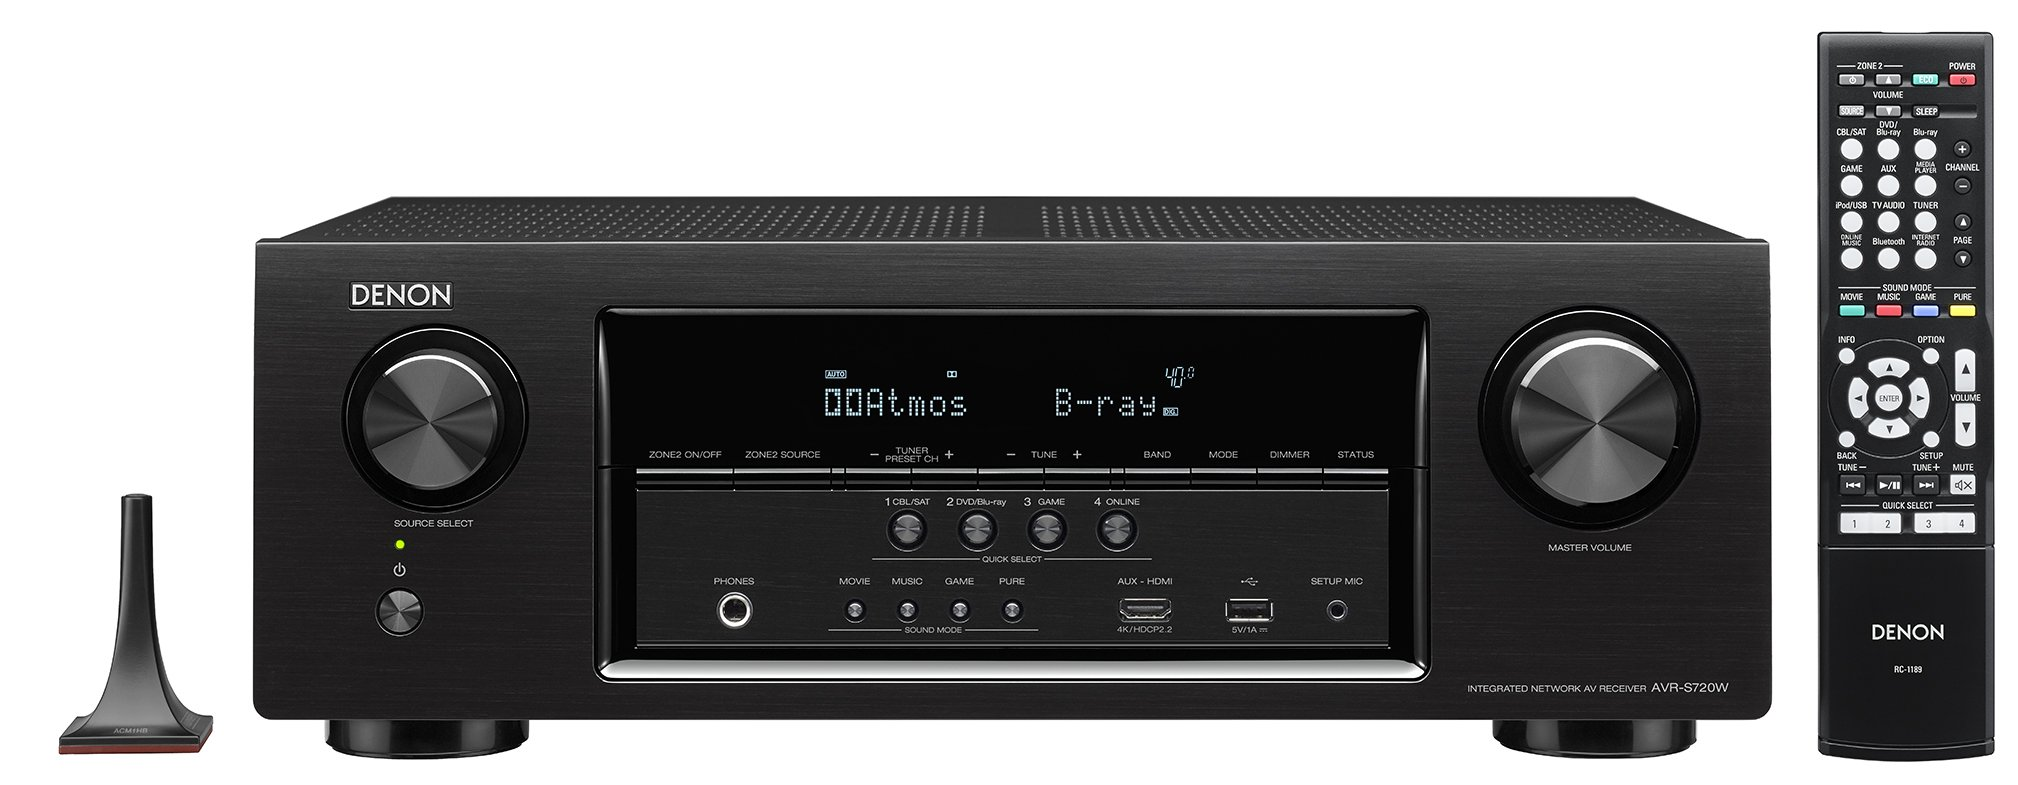 Denon AVR-S720W 7.2 Channel Full 4K Ultra HD AV Receiver with Built-In Wi-Fi and Bluetooth by Denon